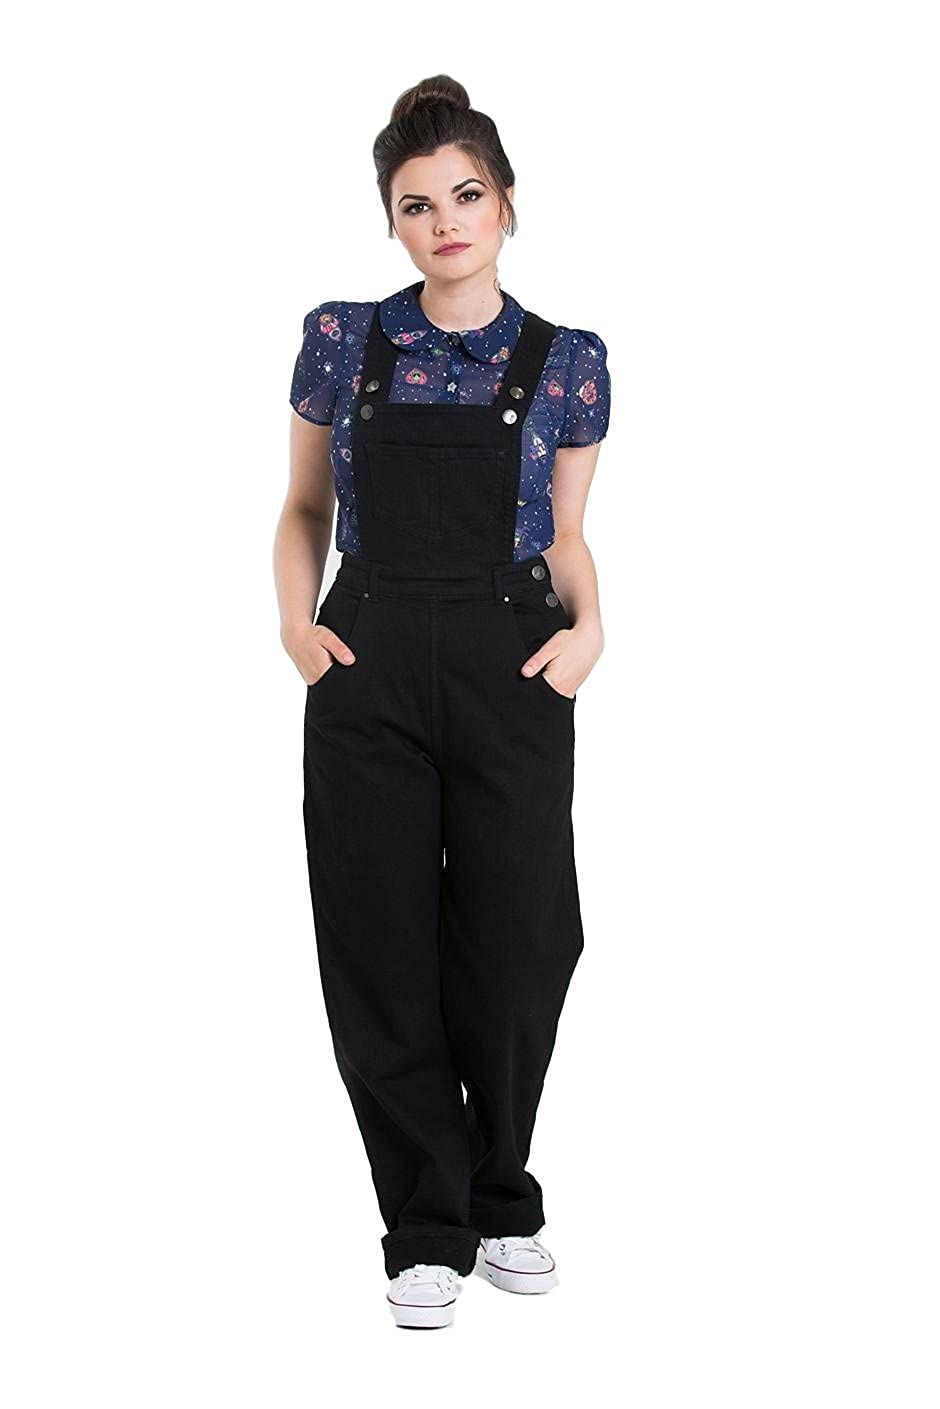 Agent Peggy Carter Costume, Dress, Hats Hell Bunny Ella May Denim Dungarees £47.99 AT vintagedancer.com